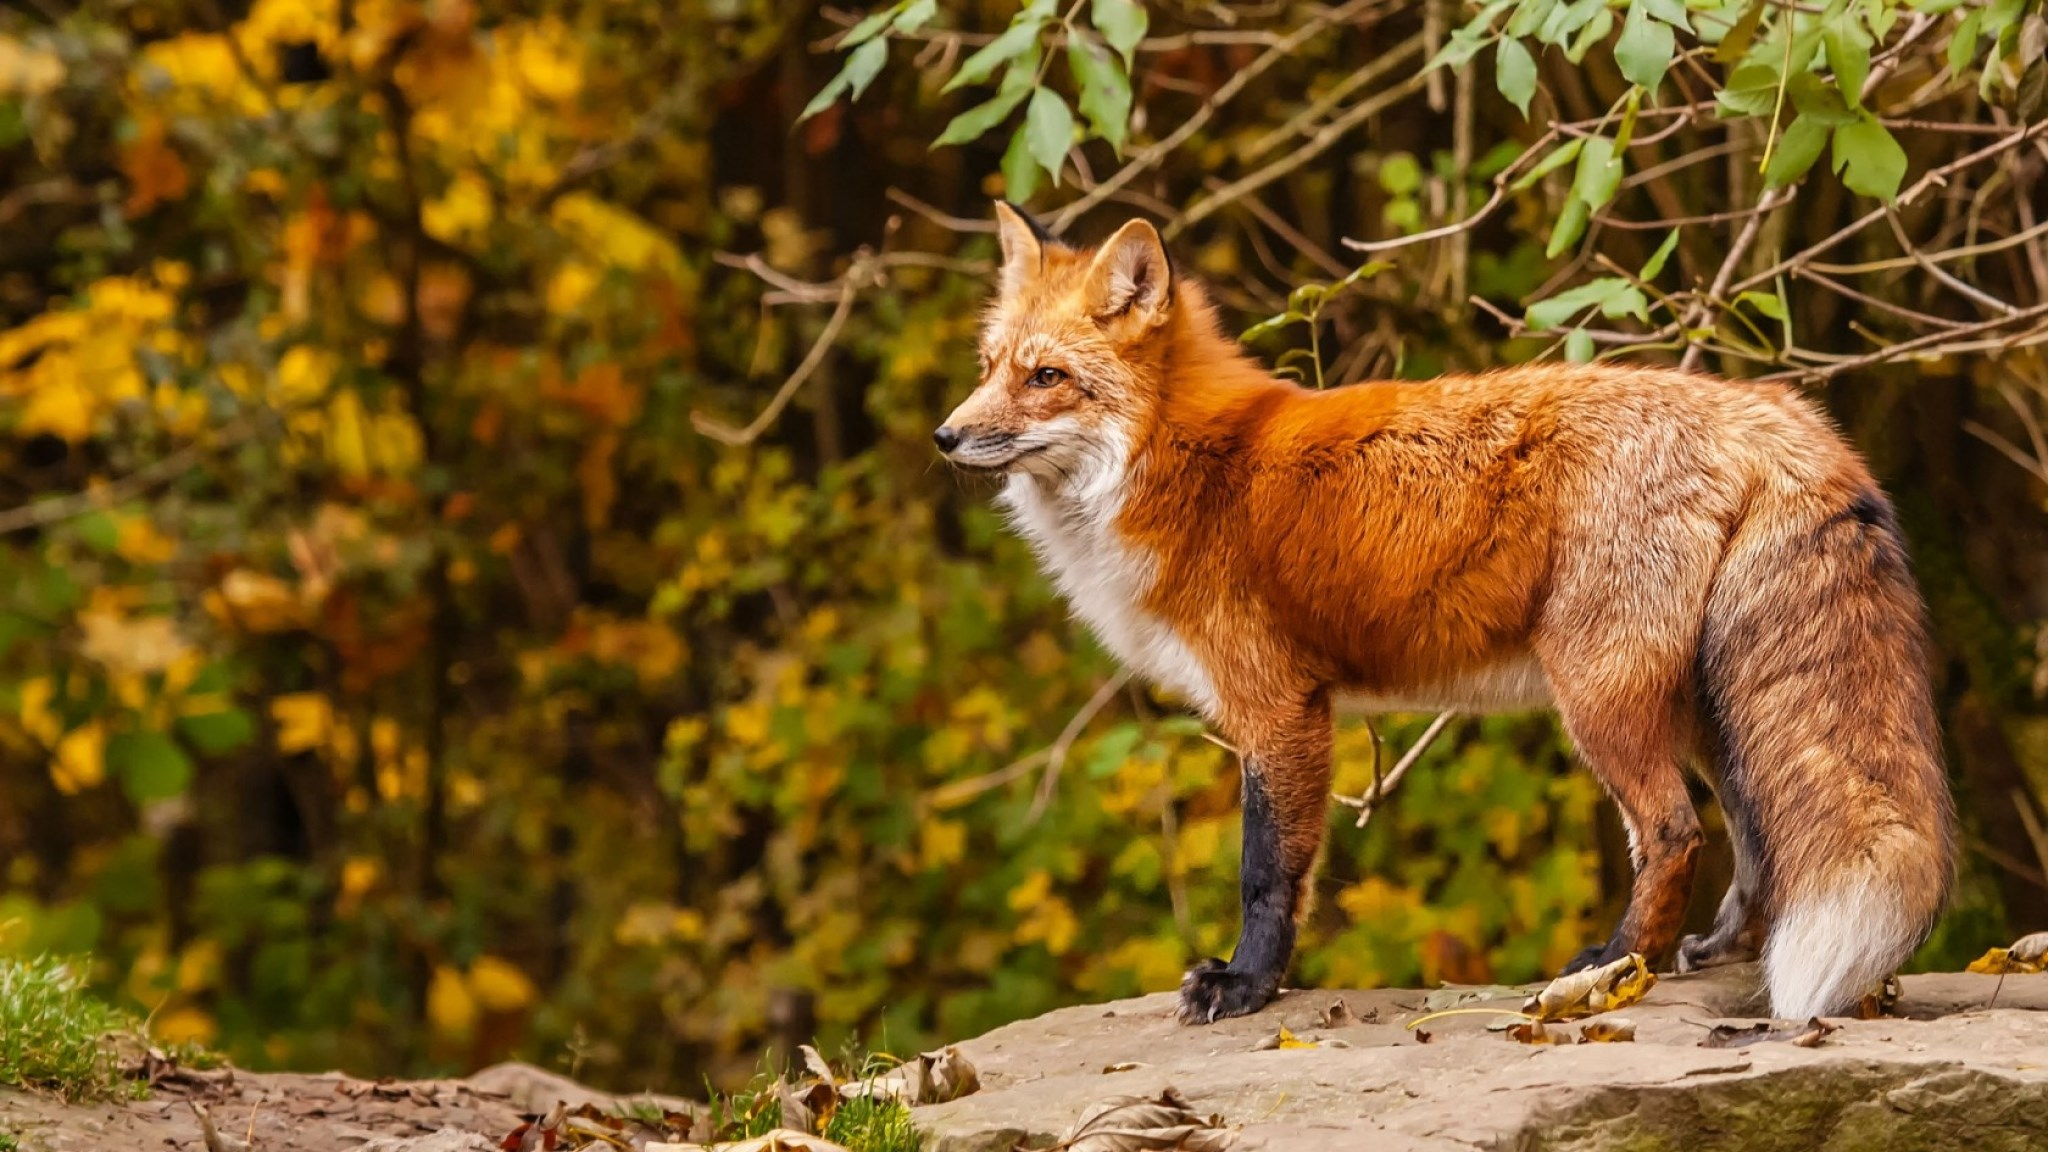 fox-backround-1080p-windows-fox-category-wallpaper-wp3405758